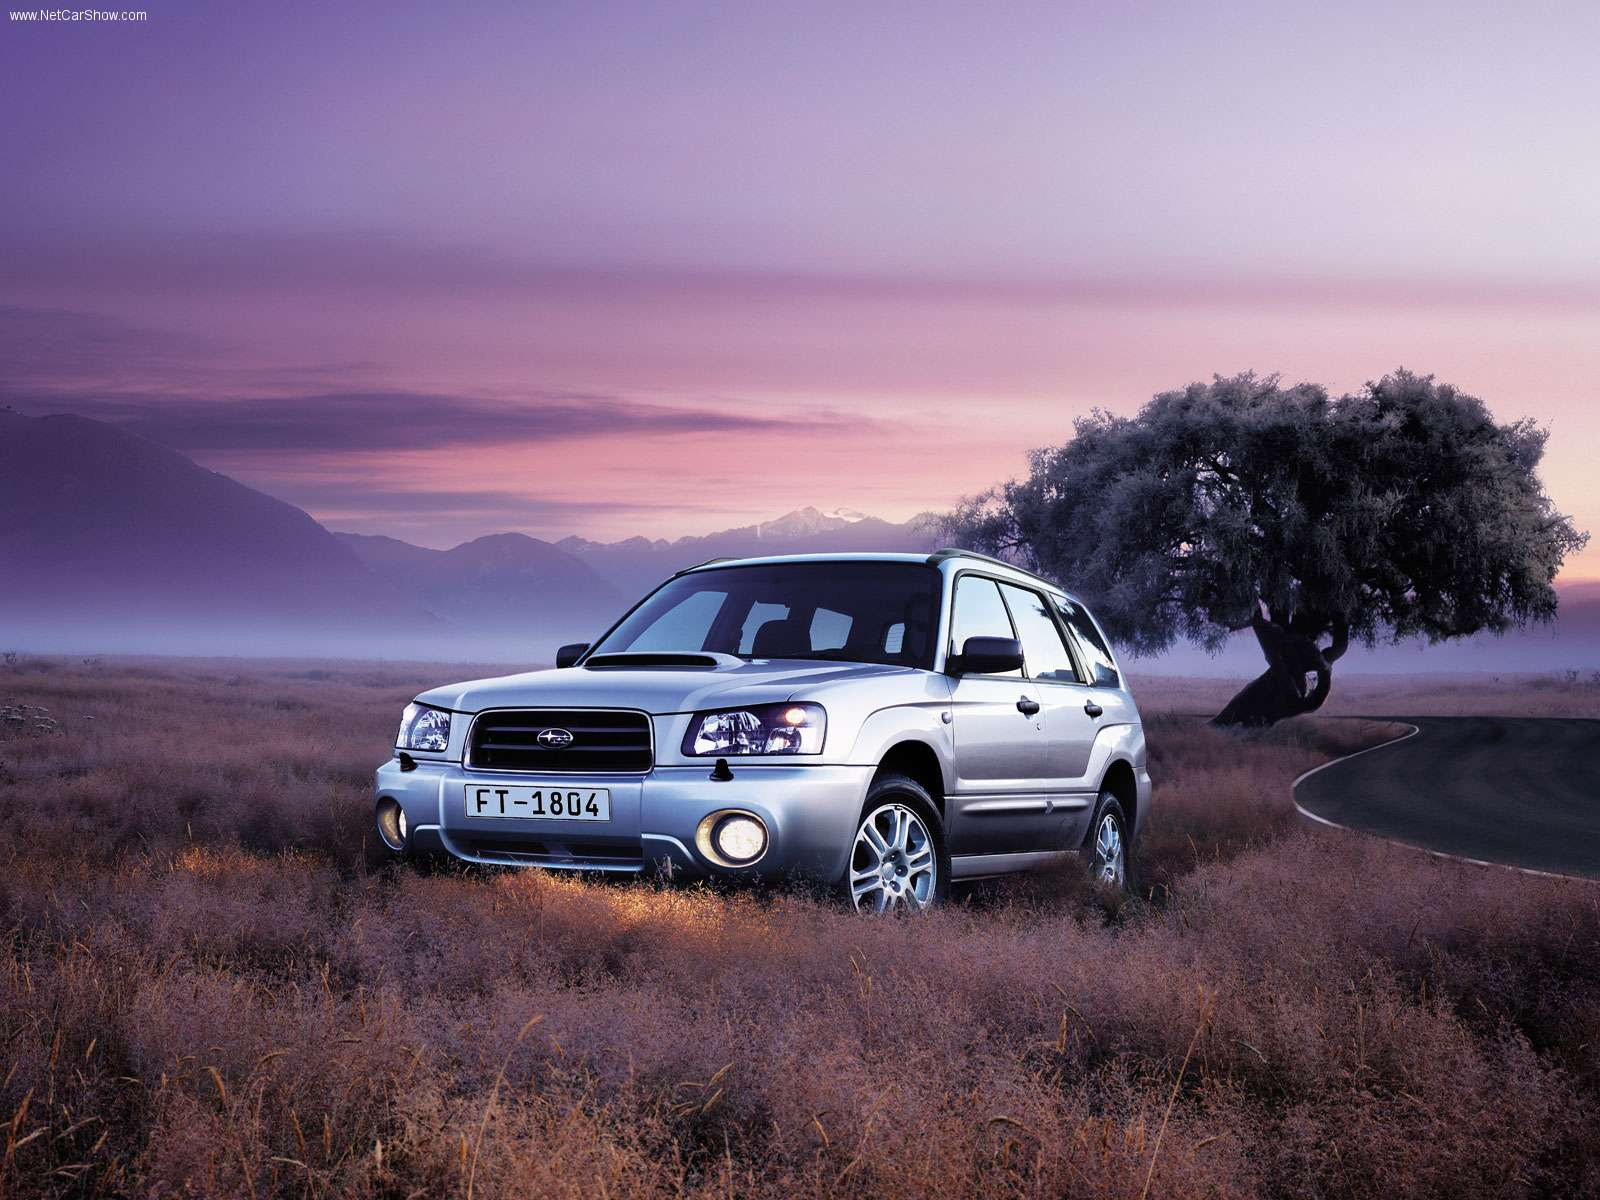 1600x1200 - Subaru Forester Wallpapers 21